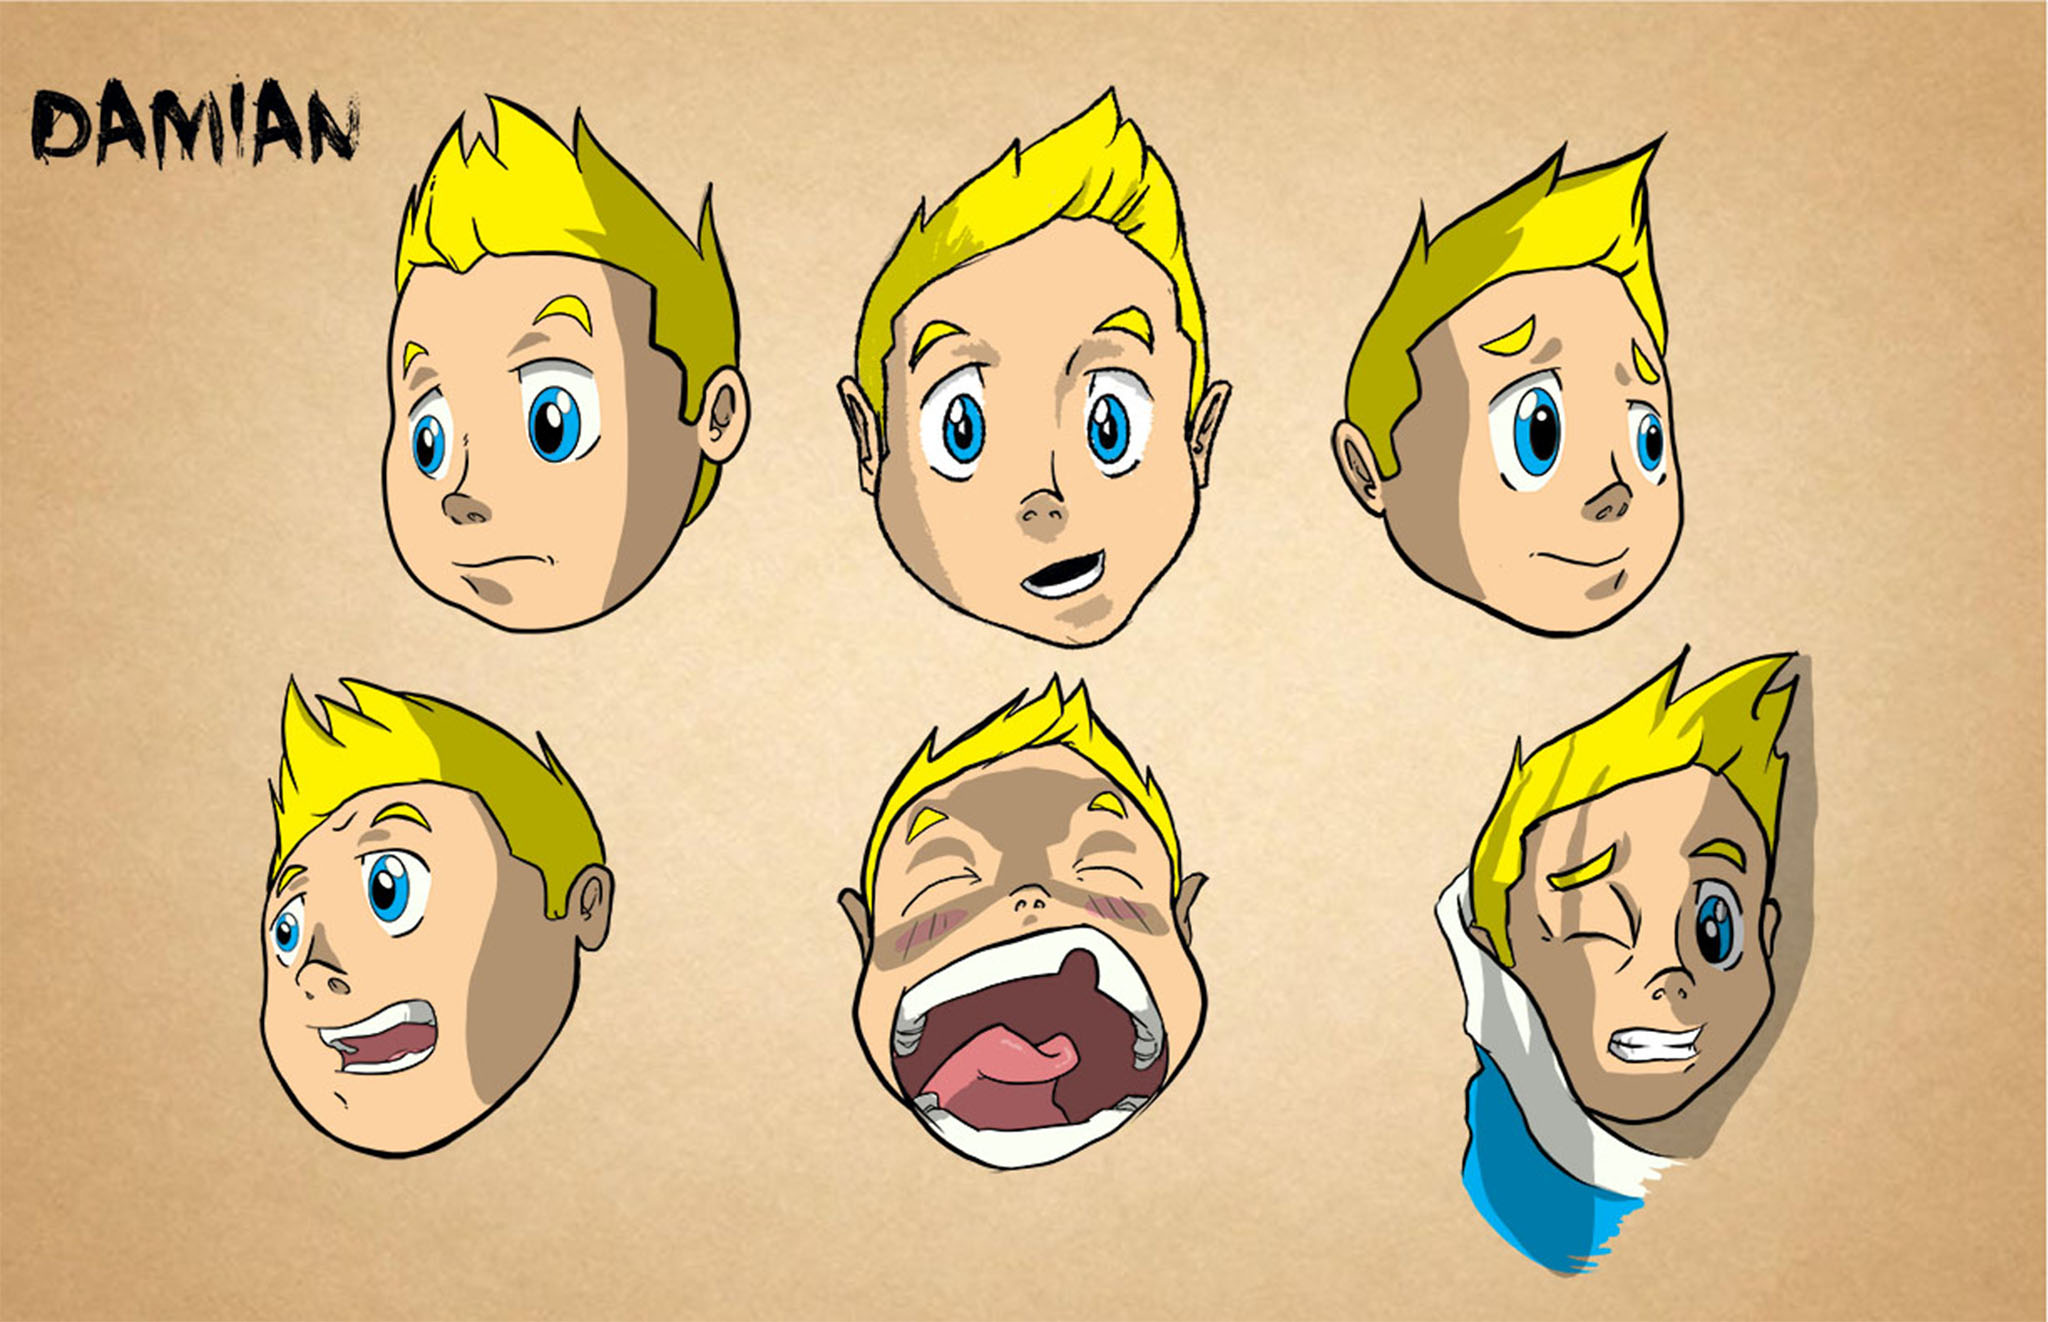 Damian Expressions.jpg